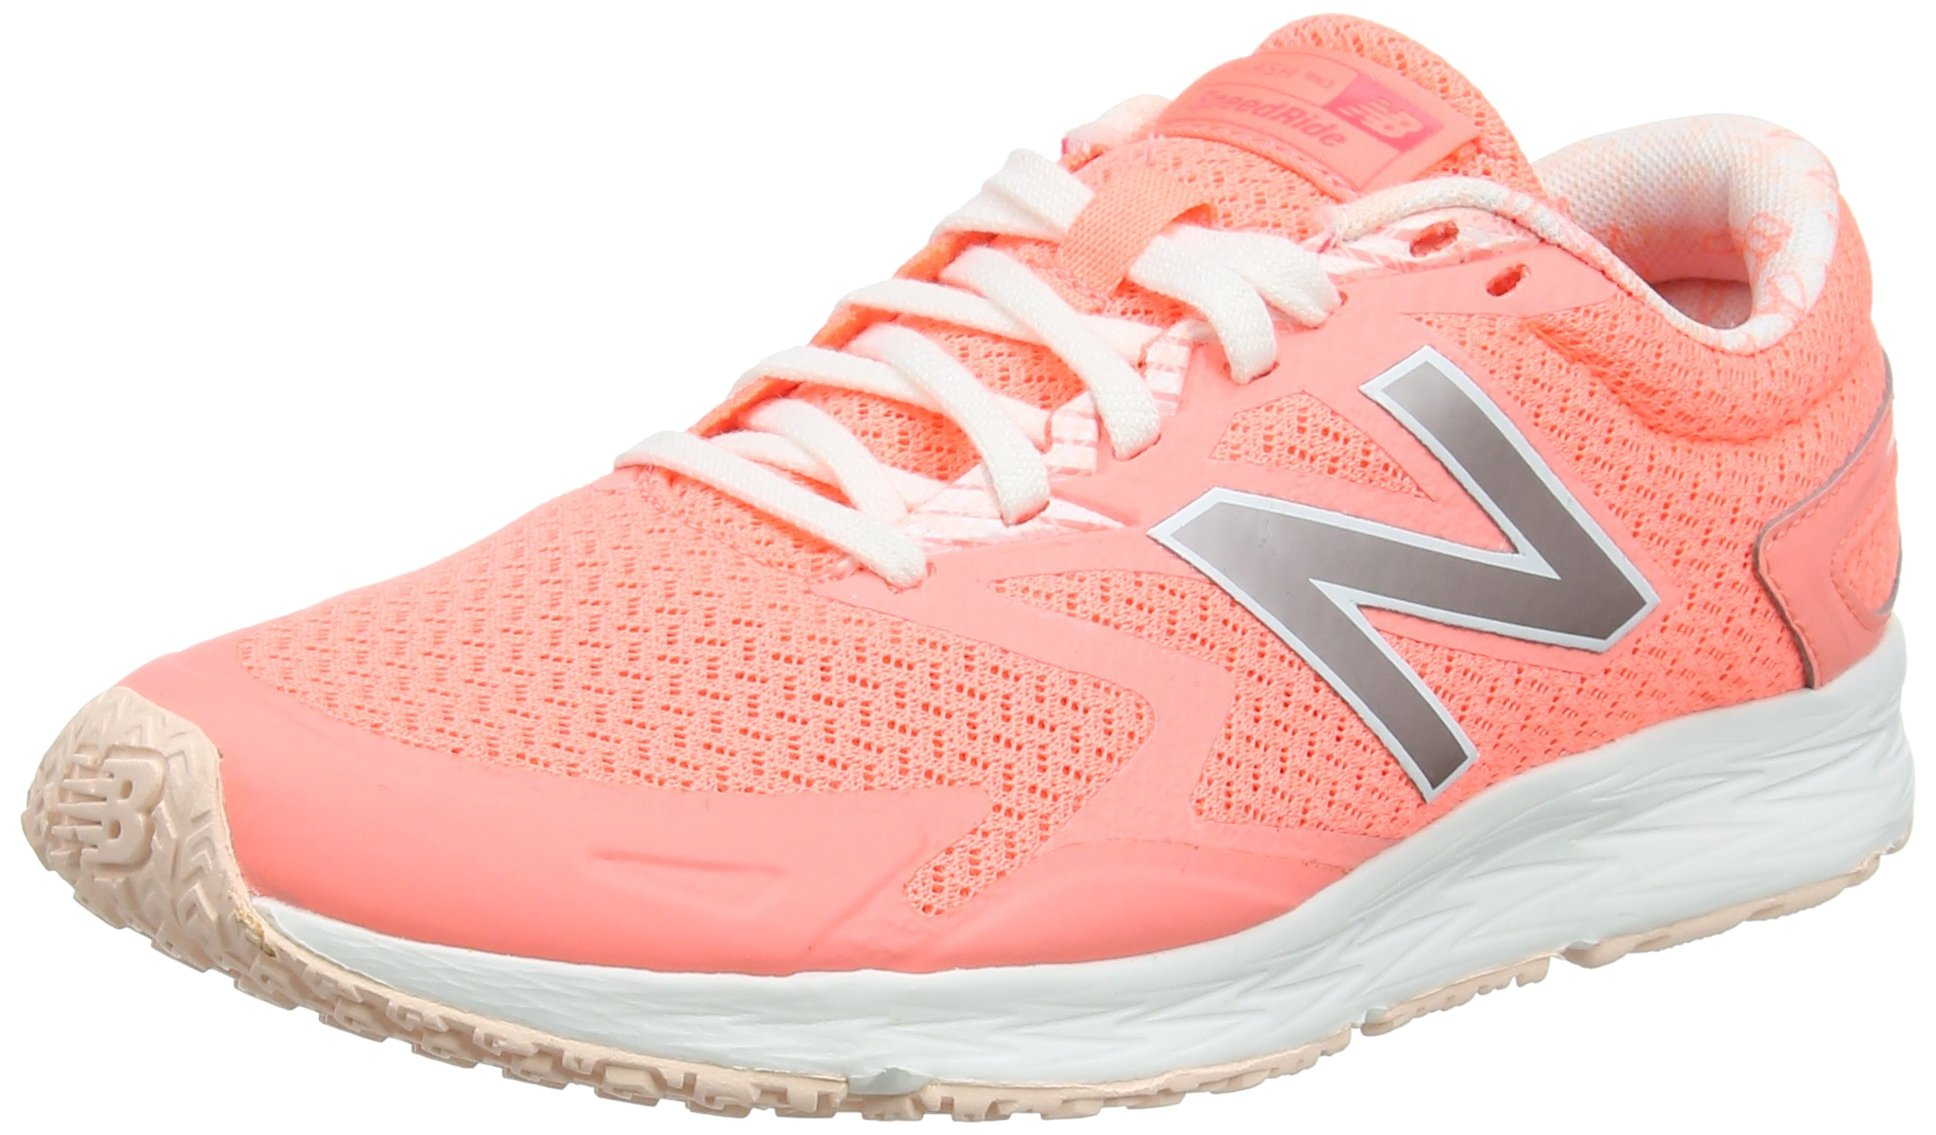 New Balance Damen WFLSHL Flash V2 Laufschuhe,